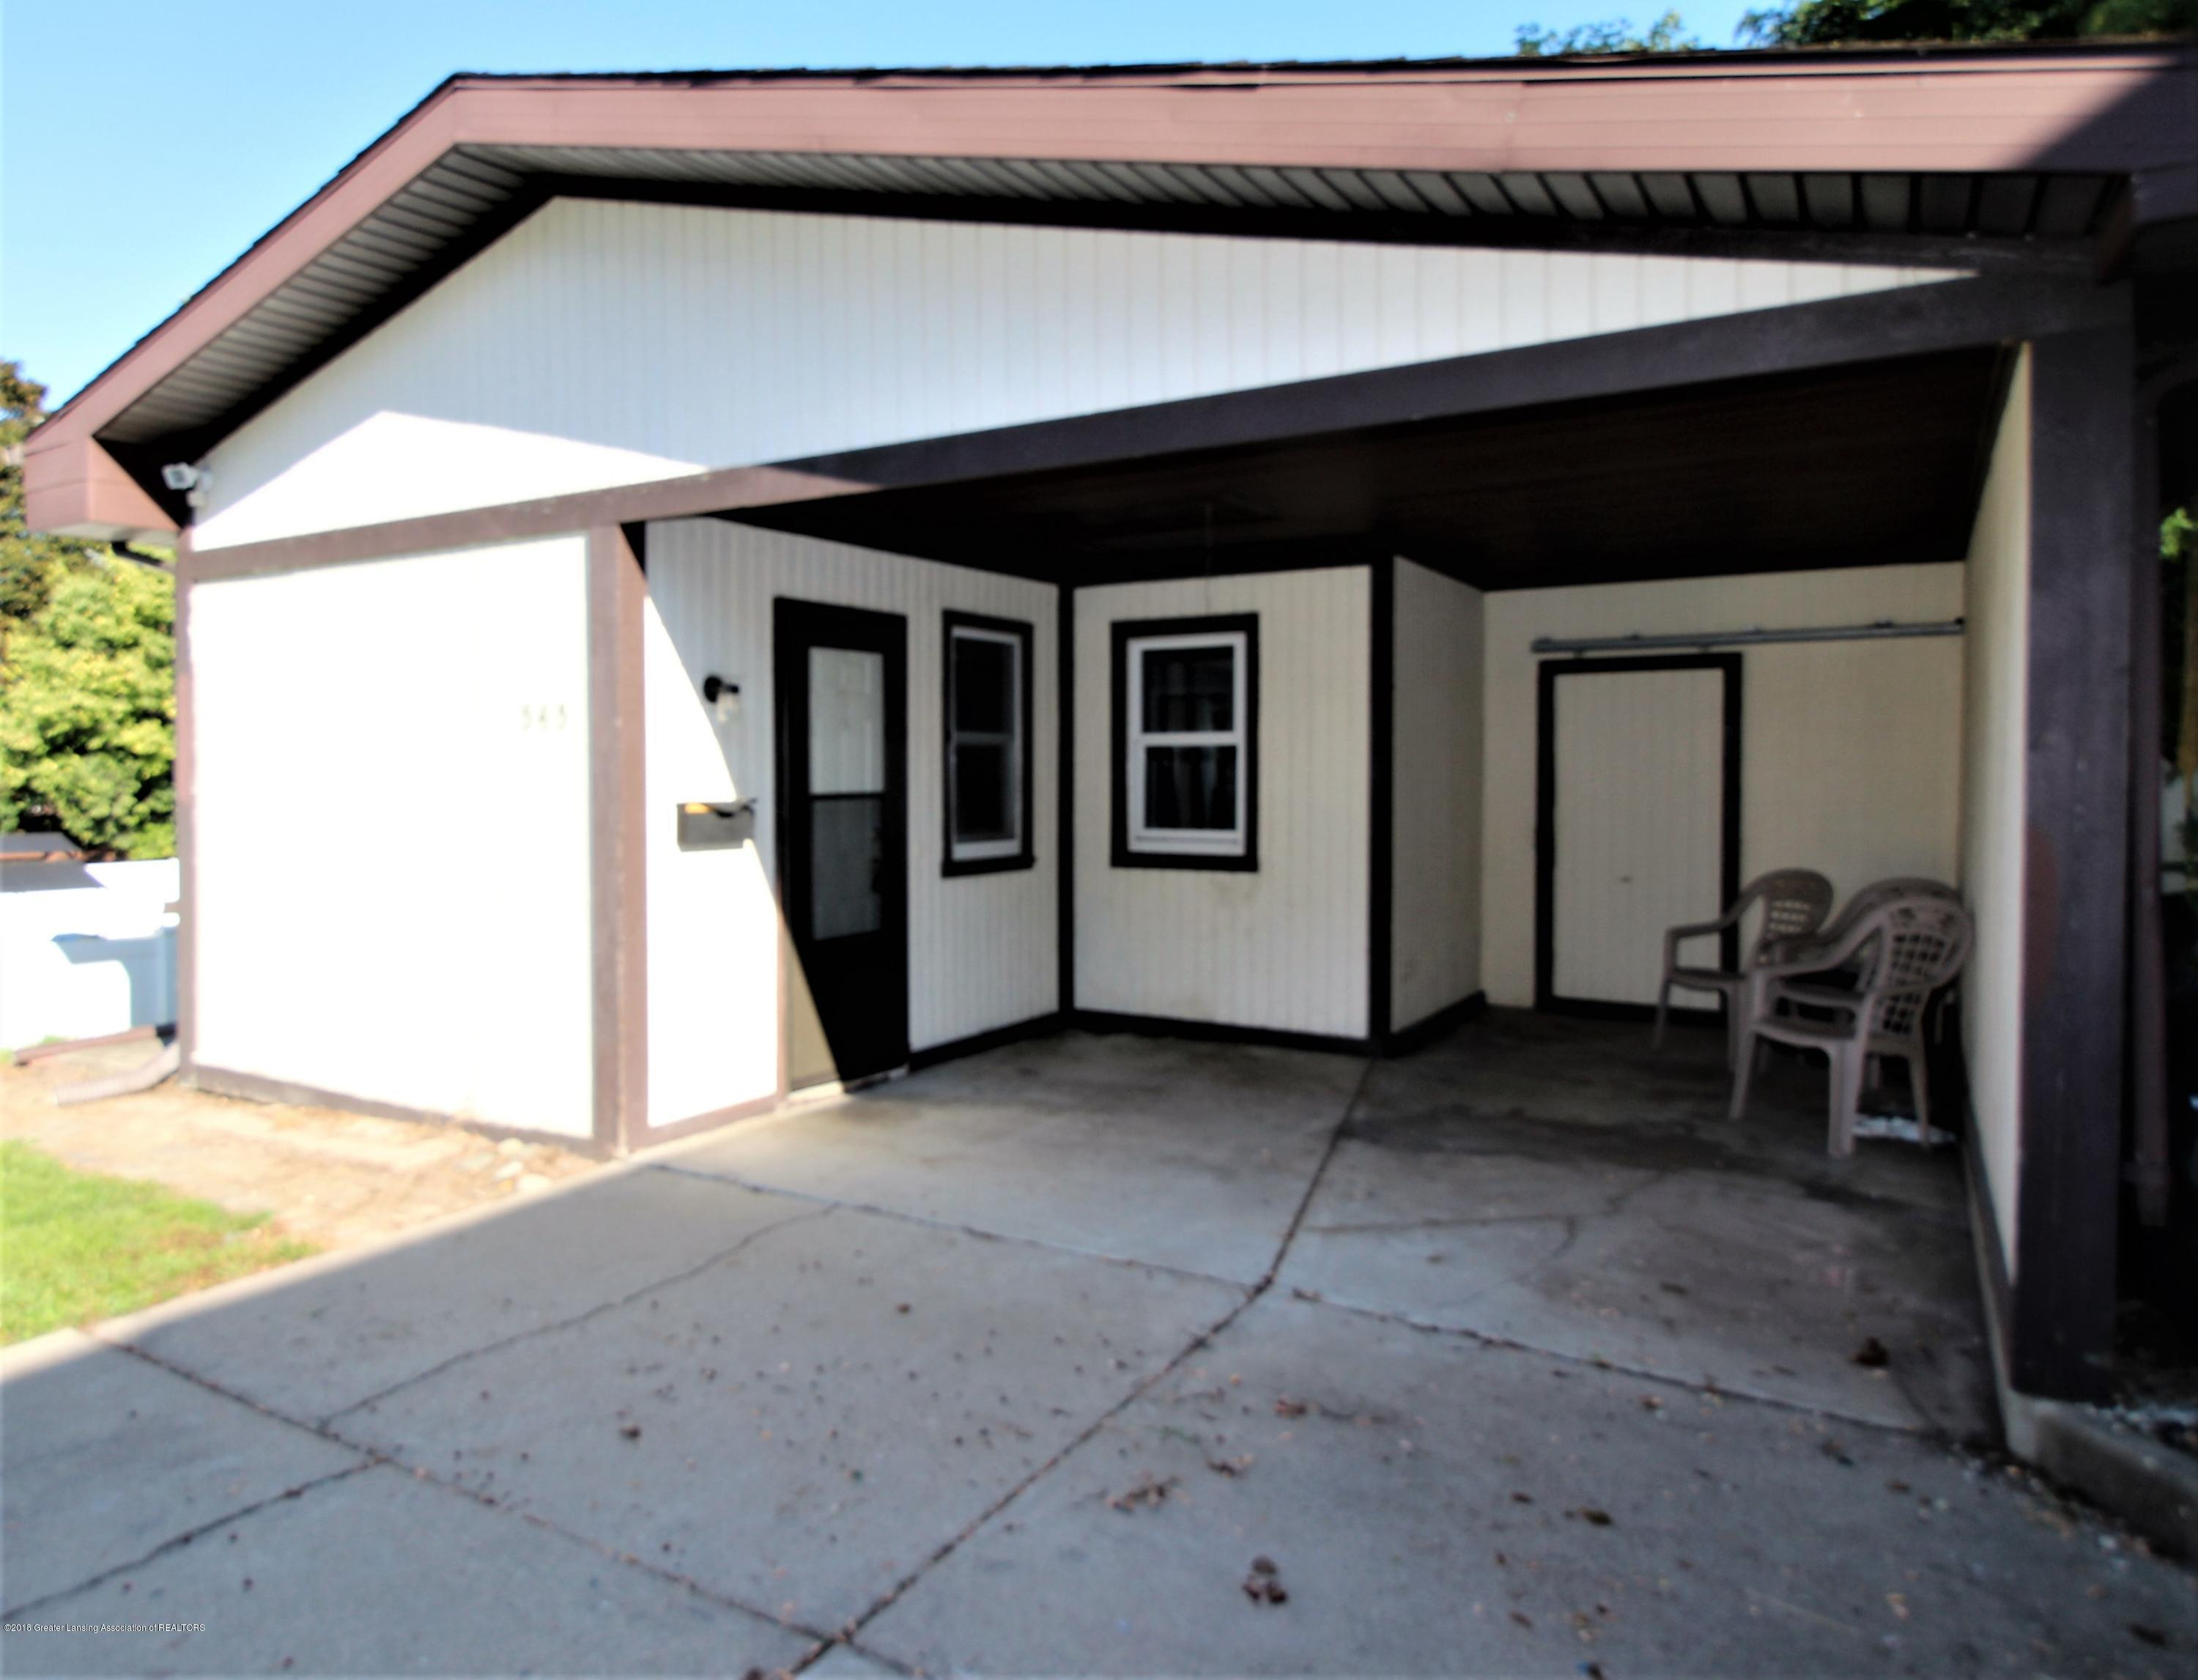 545 Tisdale Ave - 01 - 1